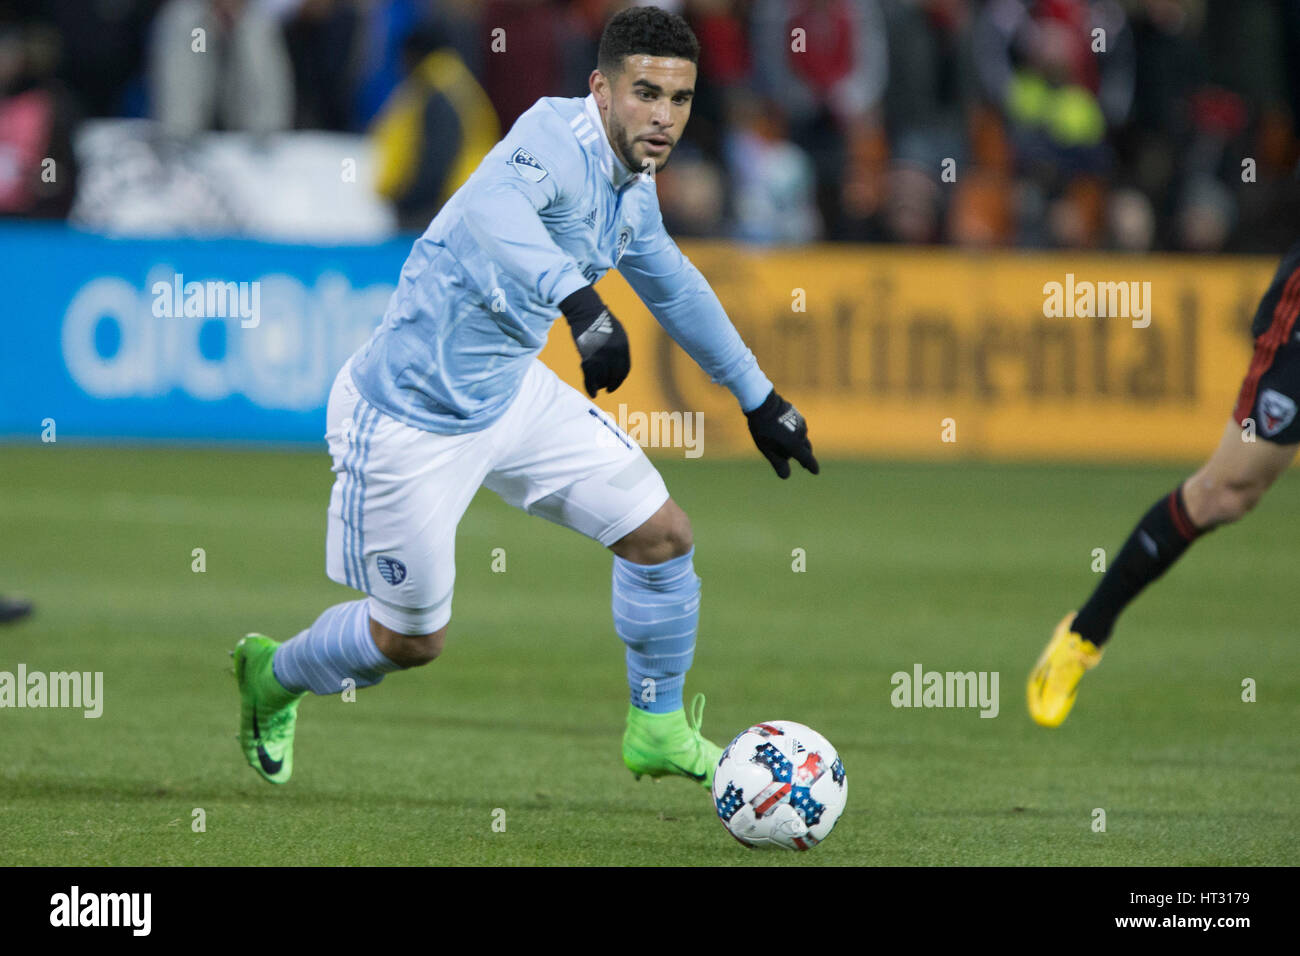 Sporting Kansas City forward Dom Dwyer (14) at RFK Stadium in Washington, D.C. on Saturday March 4, 2017. - Stock Image